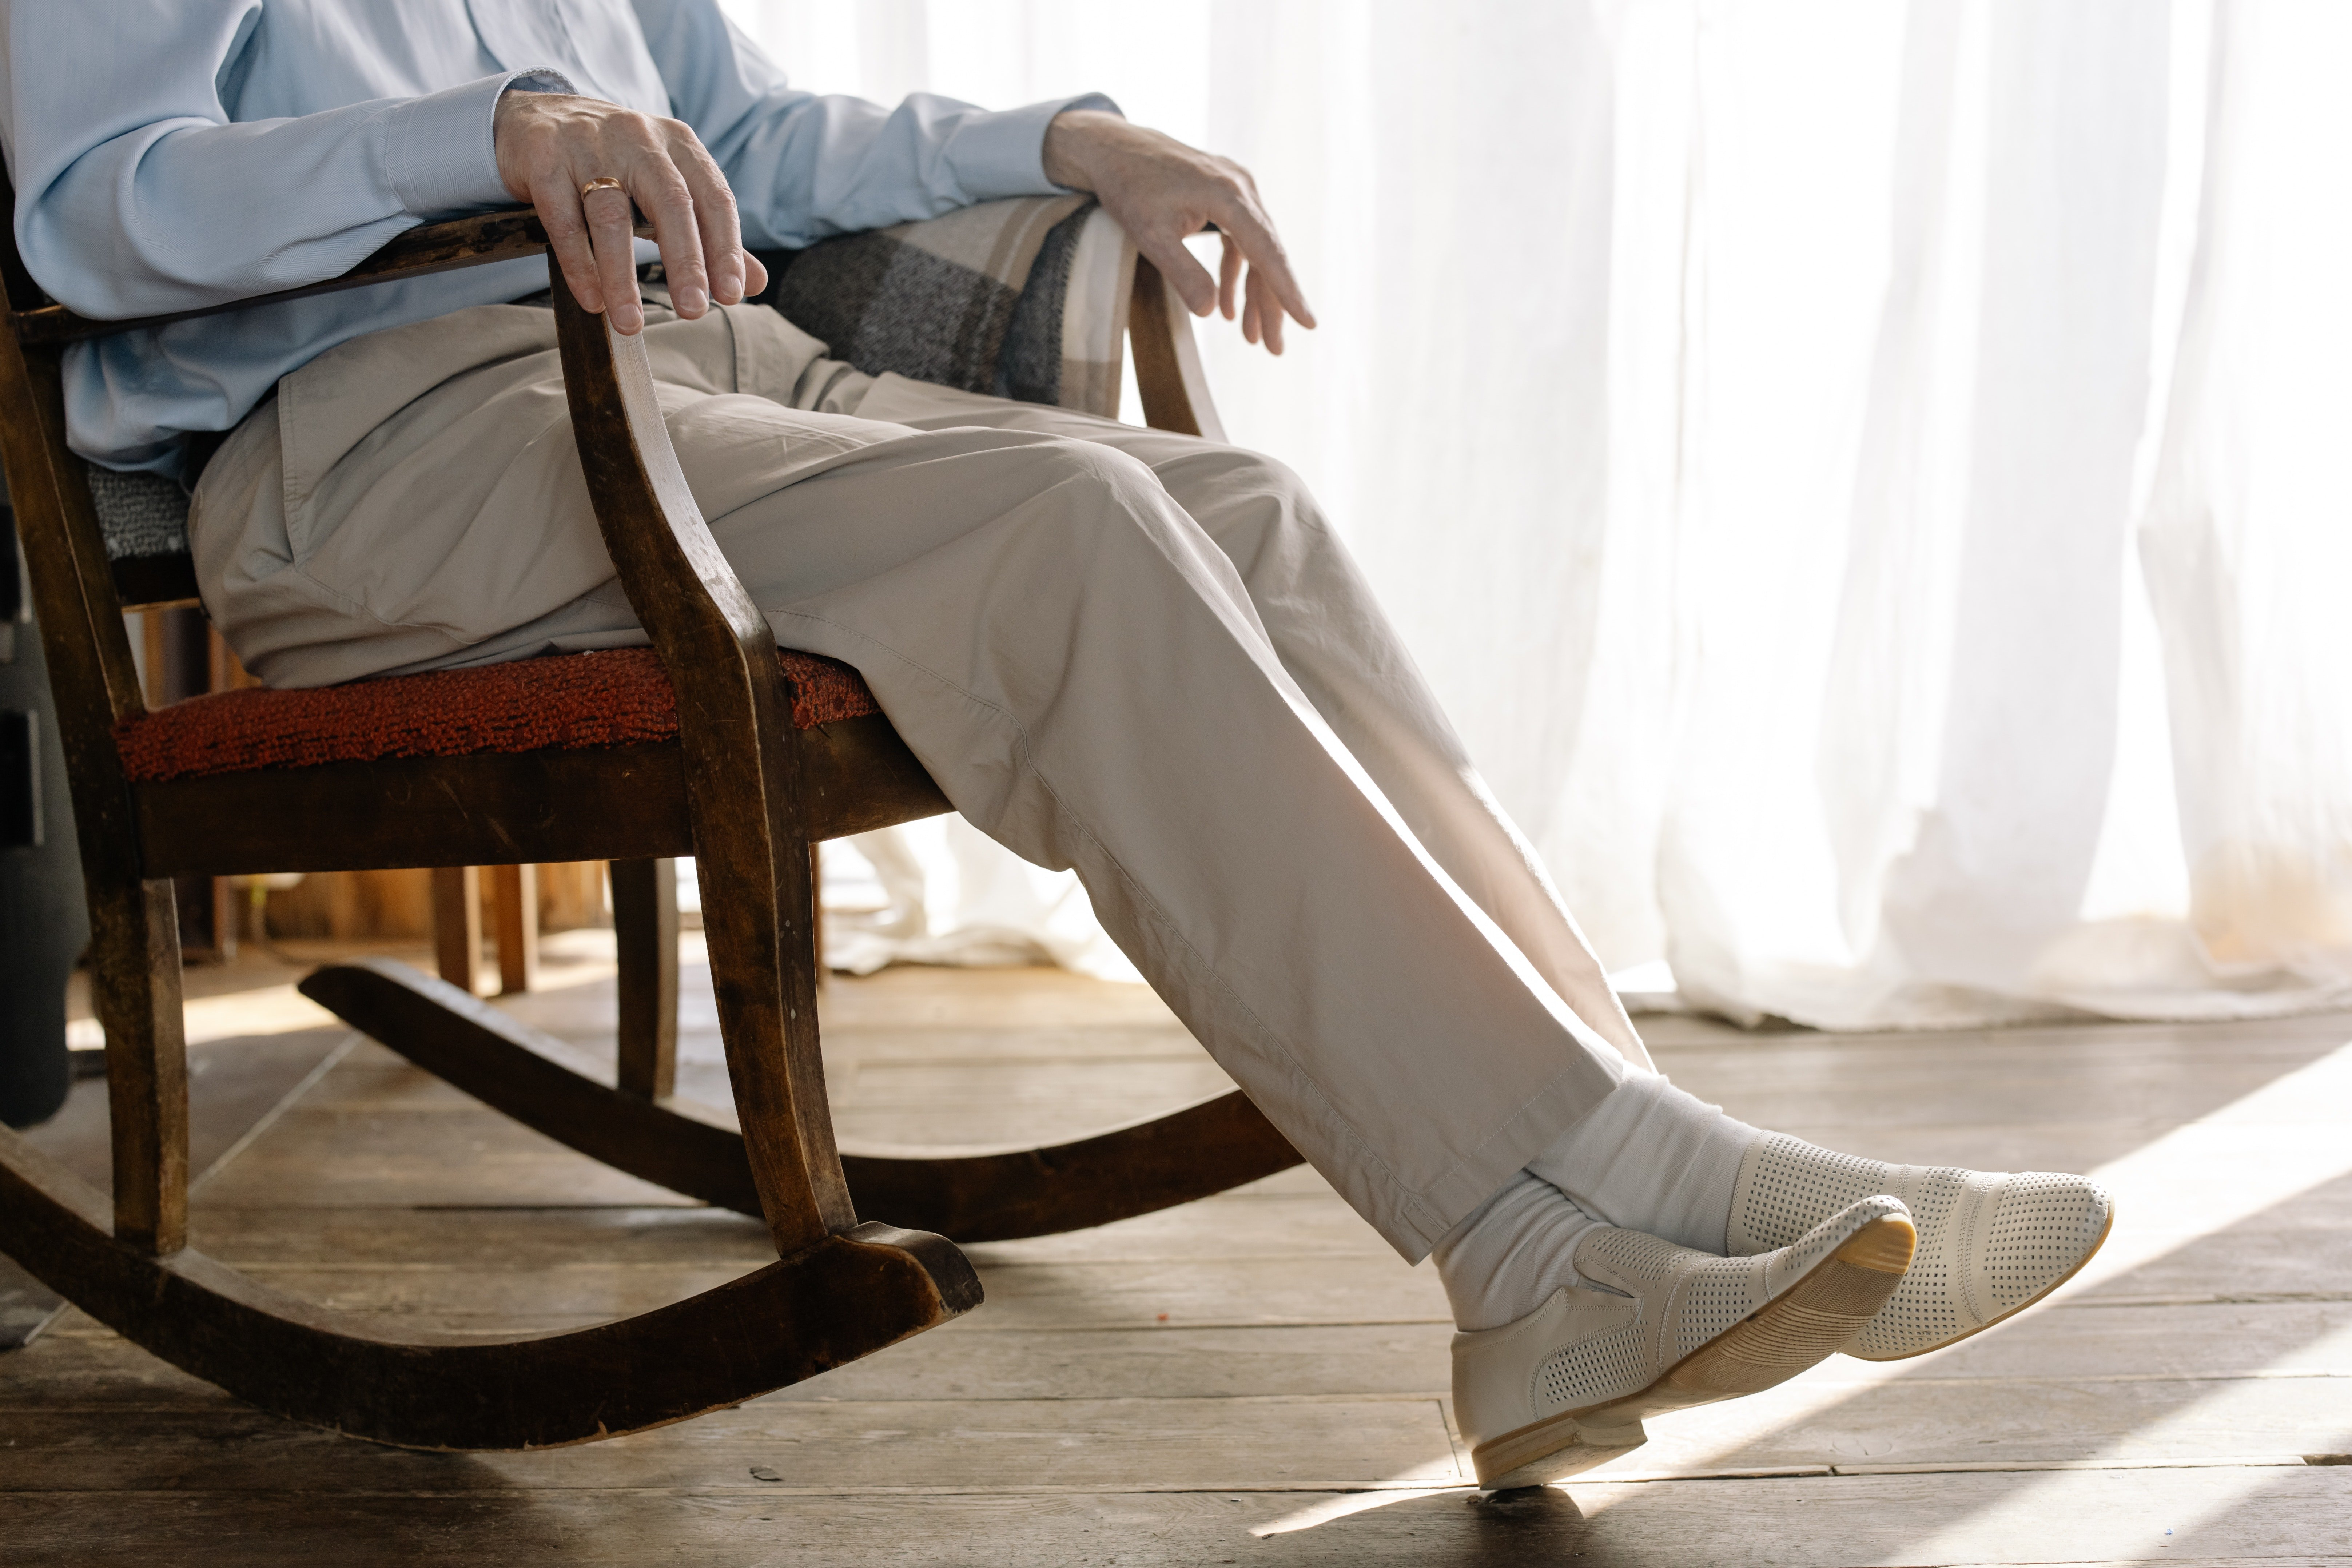 Pictured - A male individual on a rocking chair | Source: Pexels